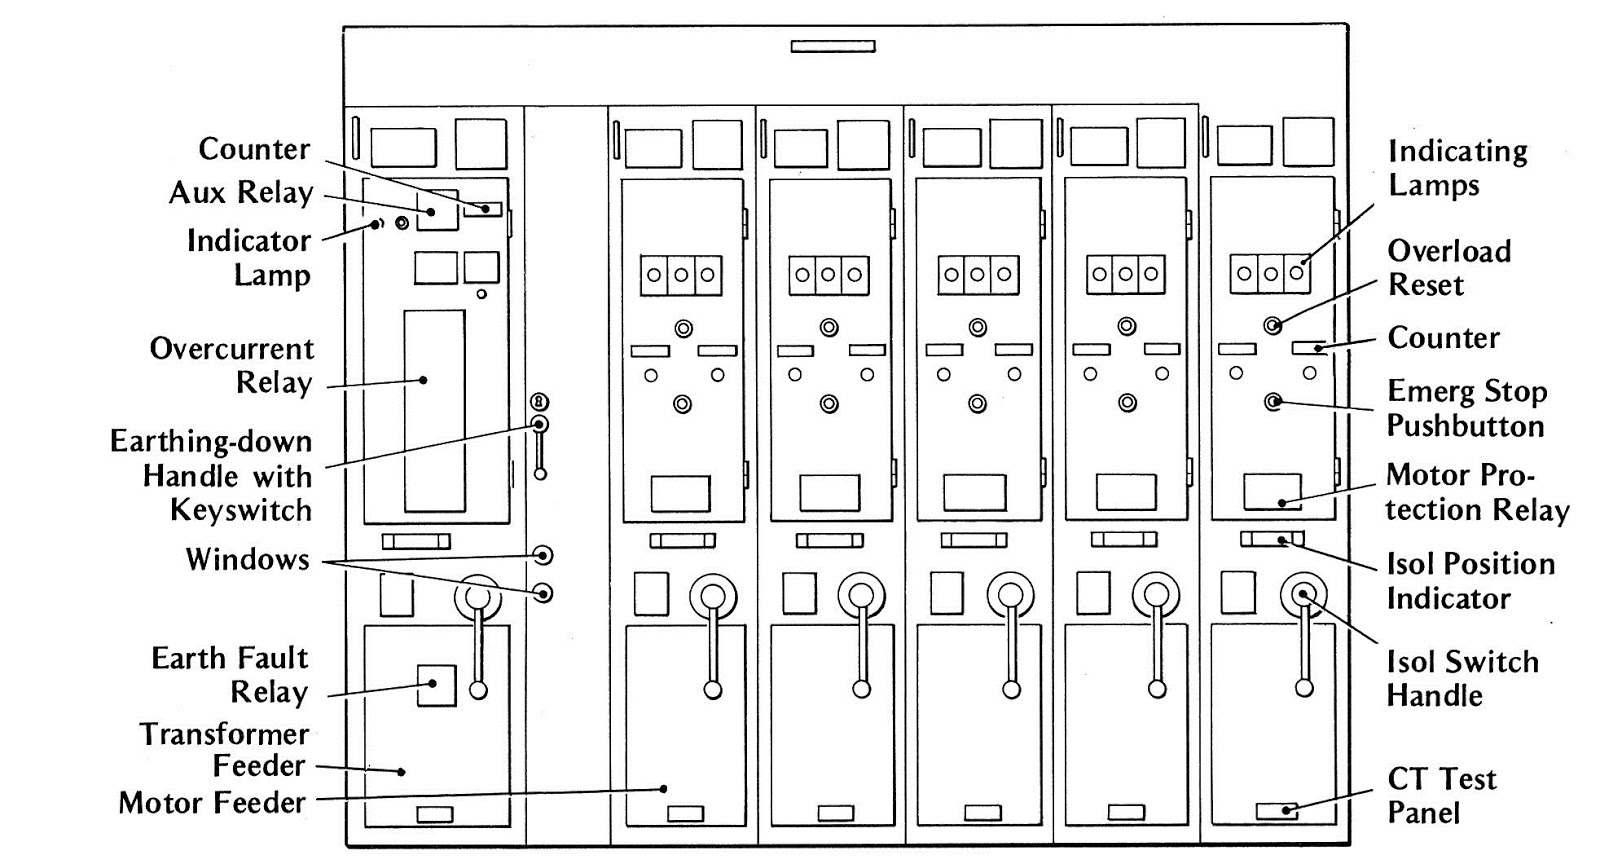 ge 8000 mcc wiring diagram Download-Image Gallery switchgear diagram 9-r